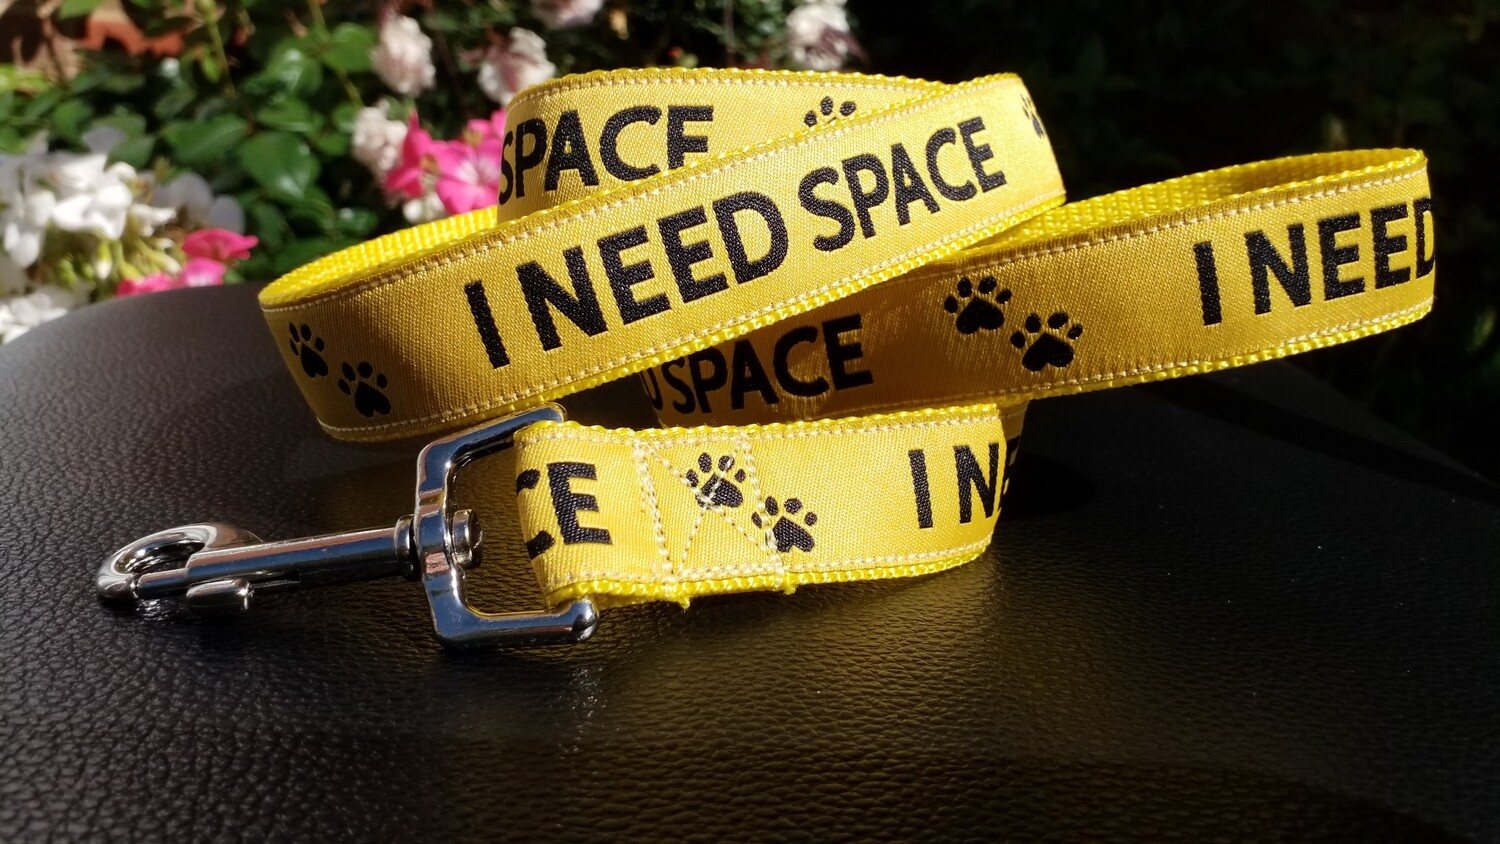 Lead 'I need space'